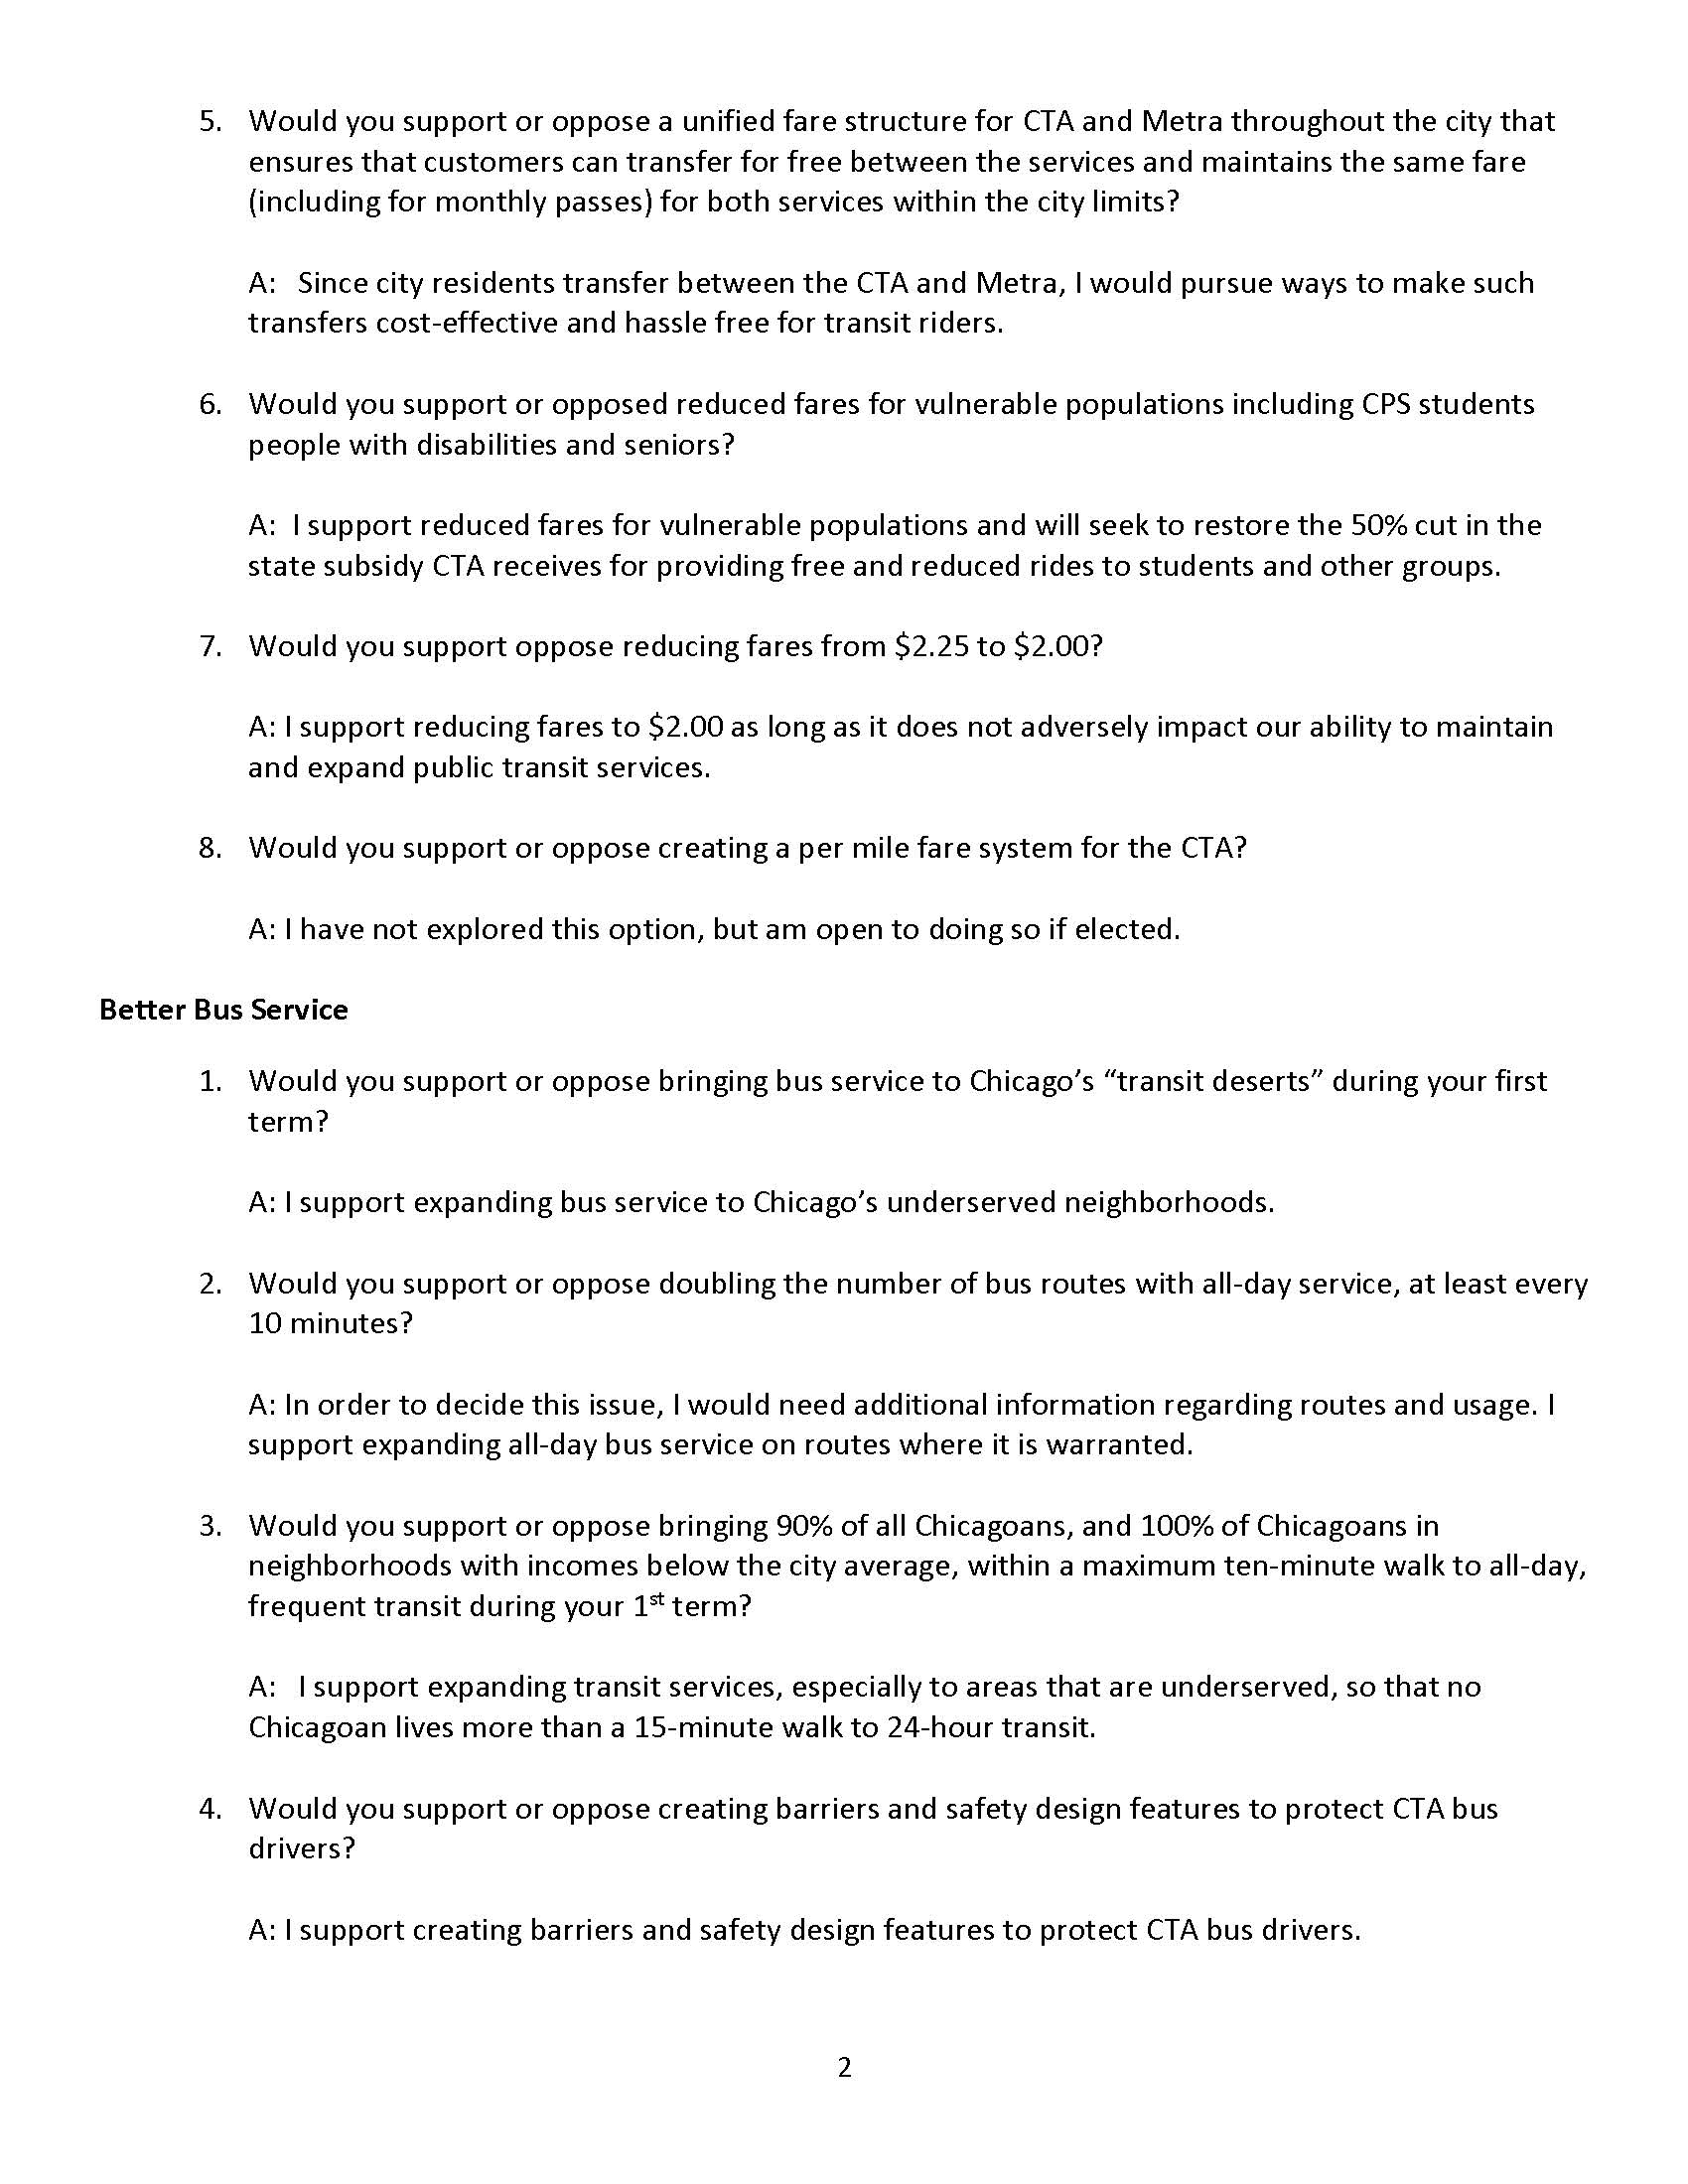 Lightfoot Responses to ATU Transit Questionnaire_Page_2.jpg